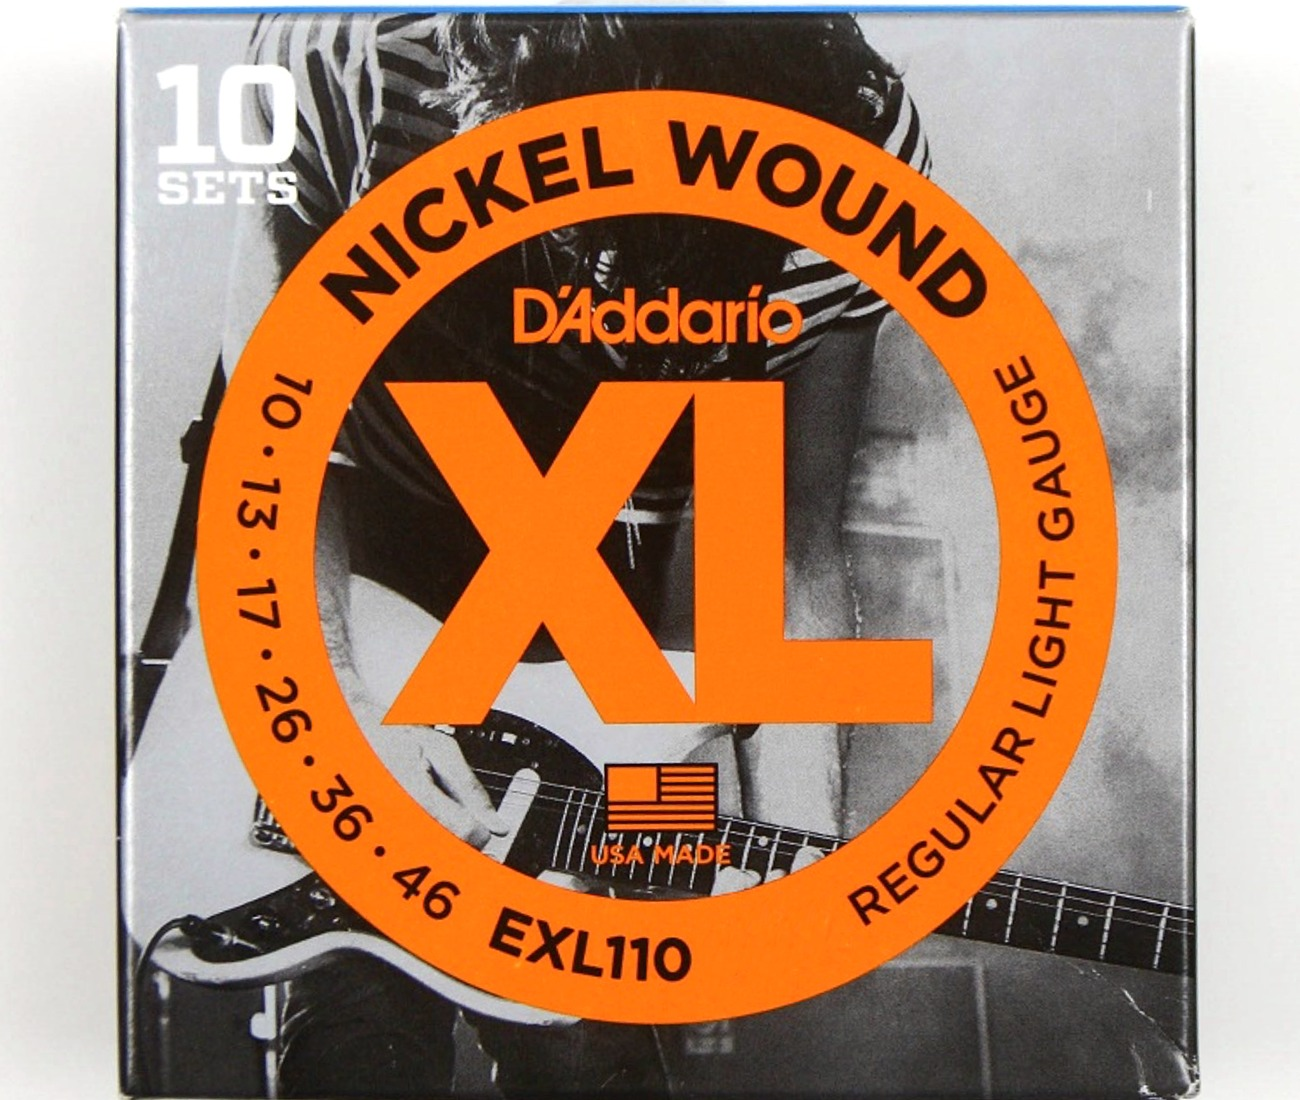 4 SETS D/'Addario EXL110 Electric Guitar Strings Nickel Regular 10-46